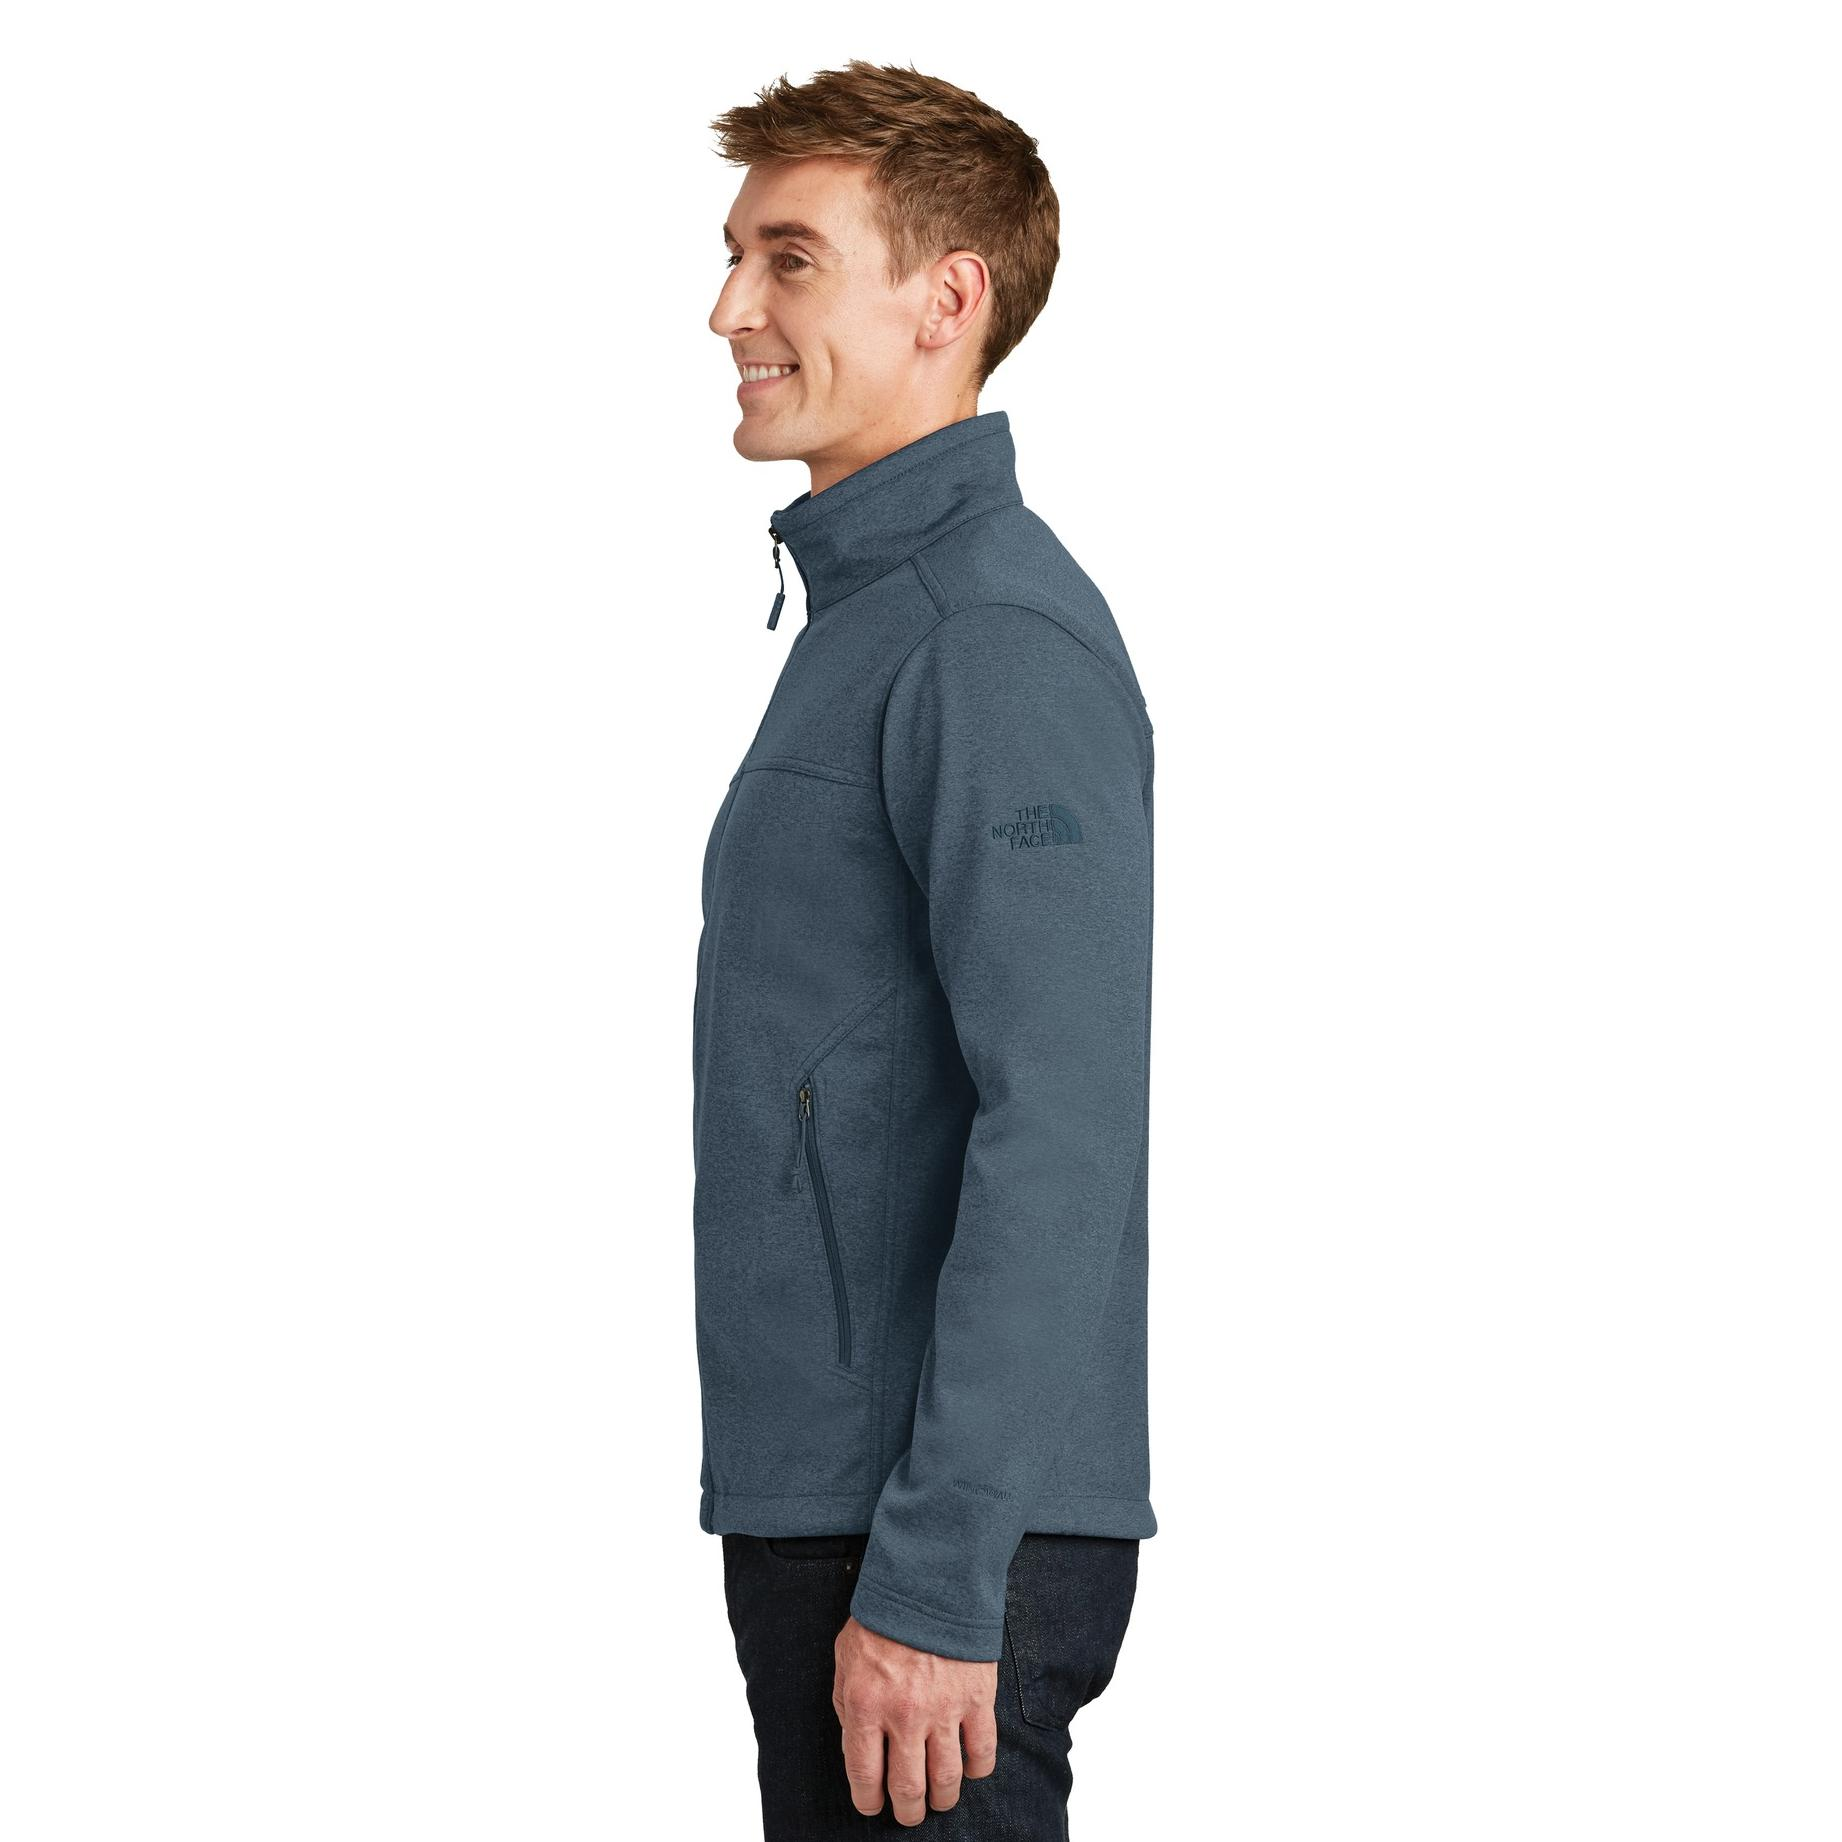 88211c868 The North Face NF0A3LGX Ridgeline Soft Shell Jacket - Urban Navy ...